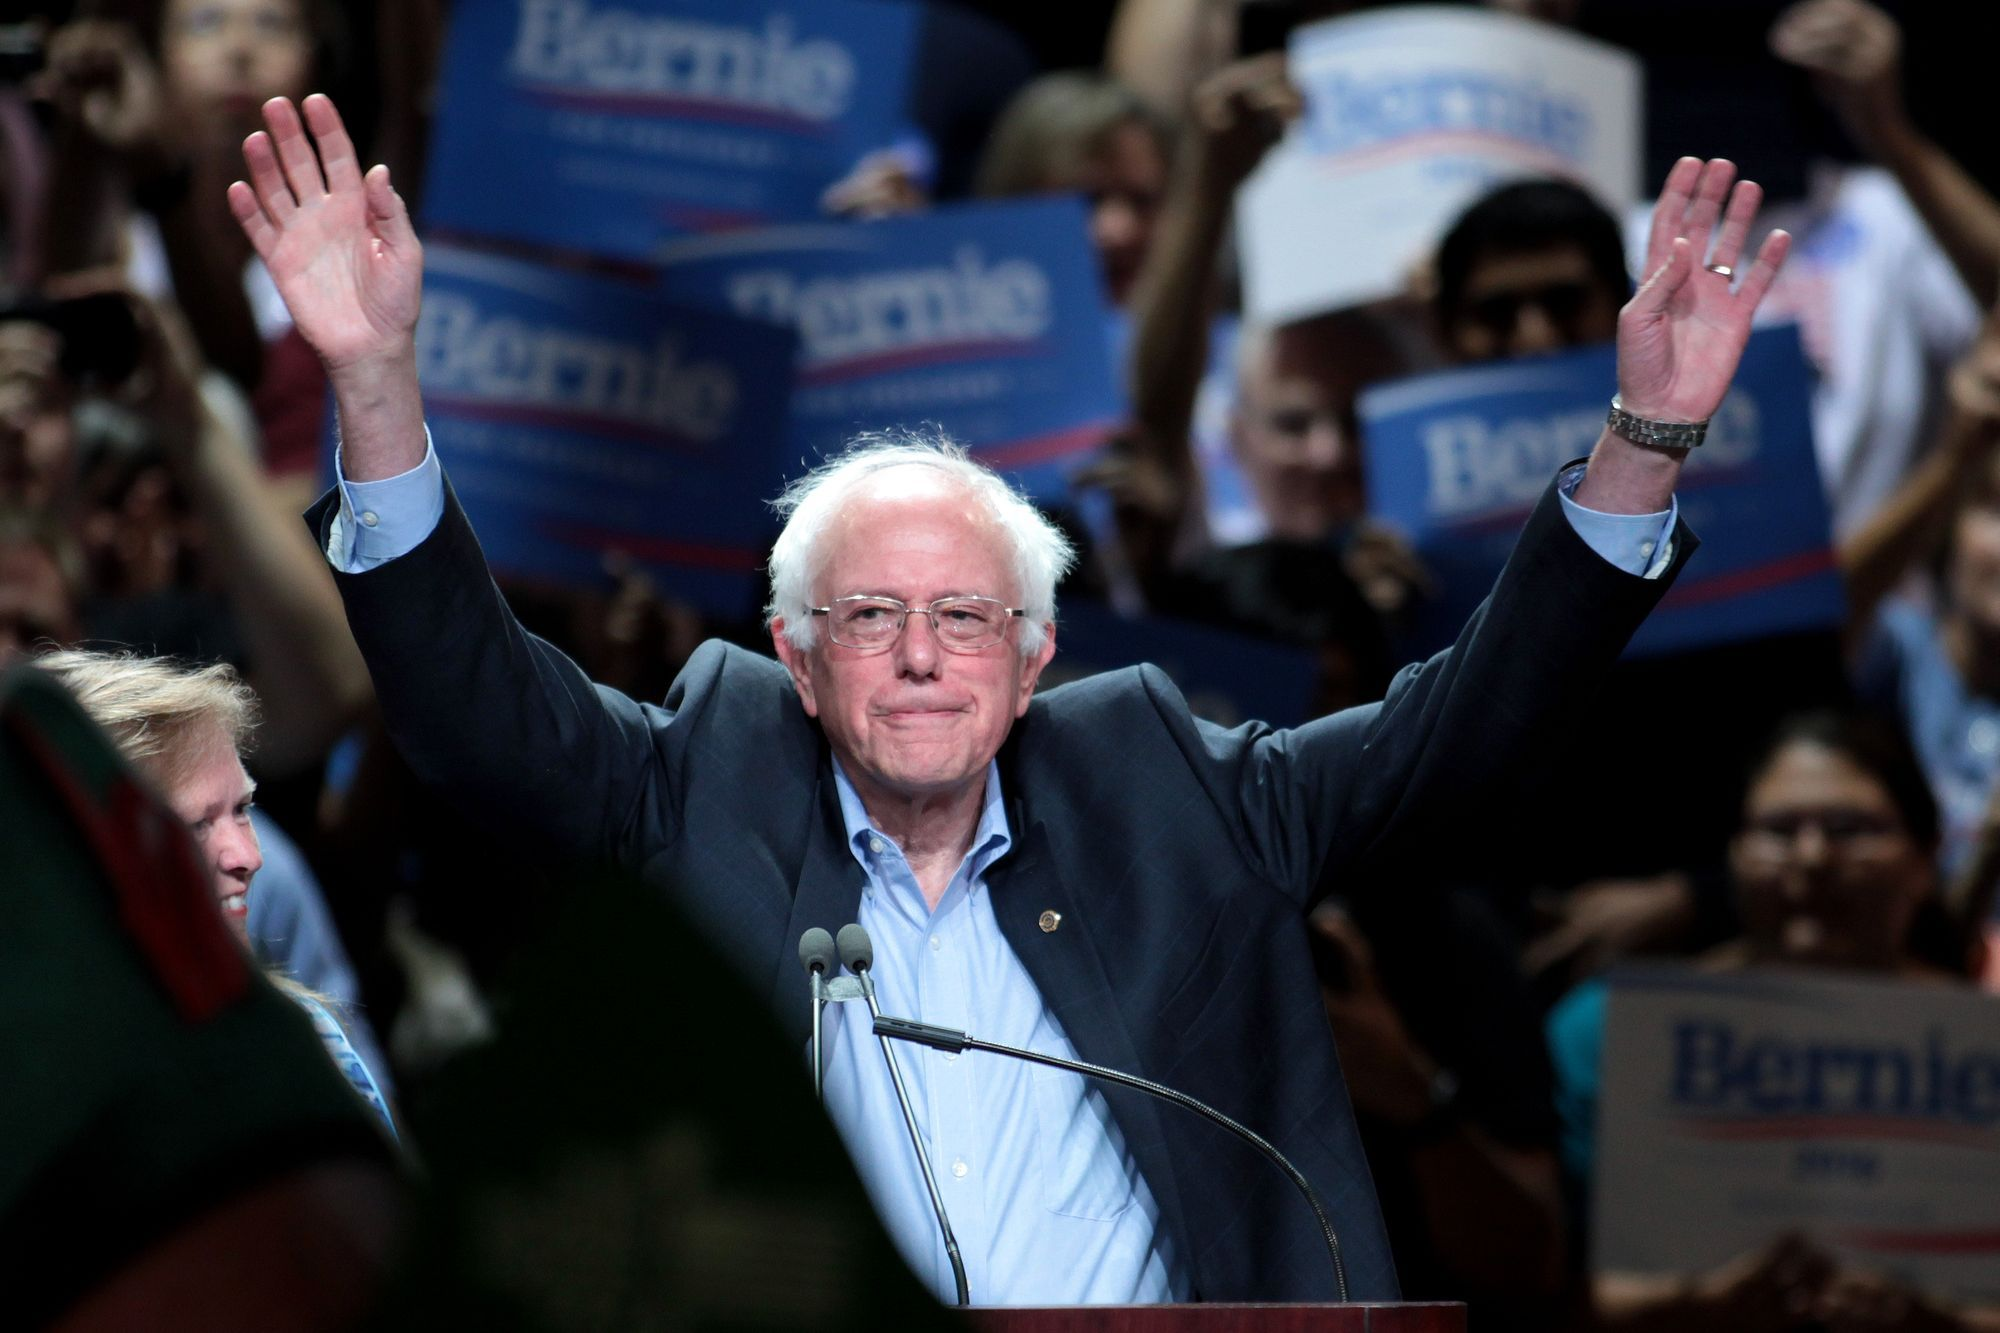 BREAKING: Bernie TODAY Will Announce His 2020 Presidential Run, Says Insider 🔥